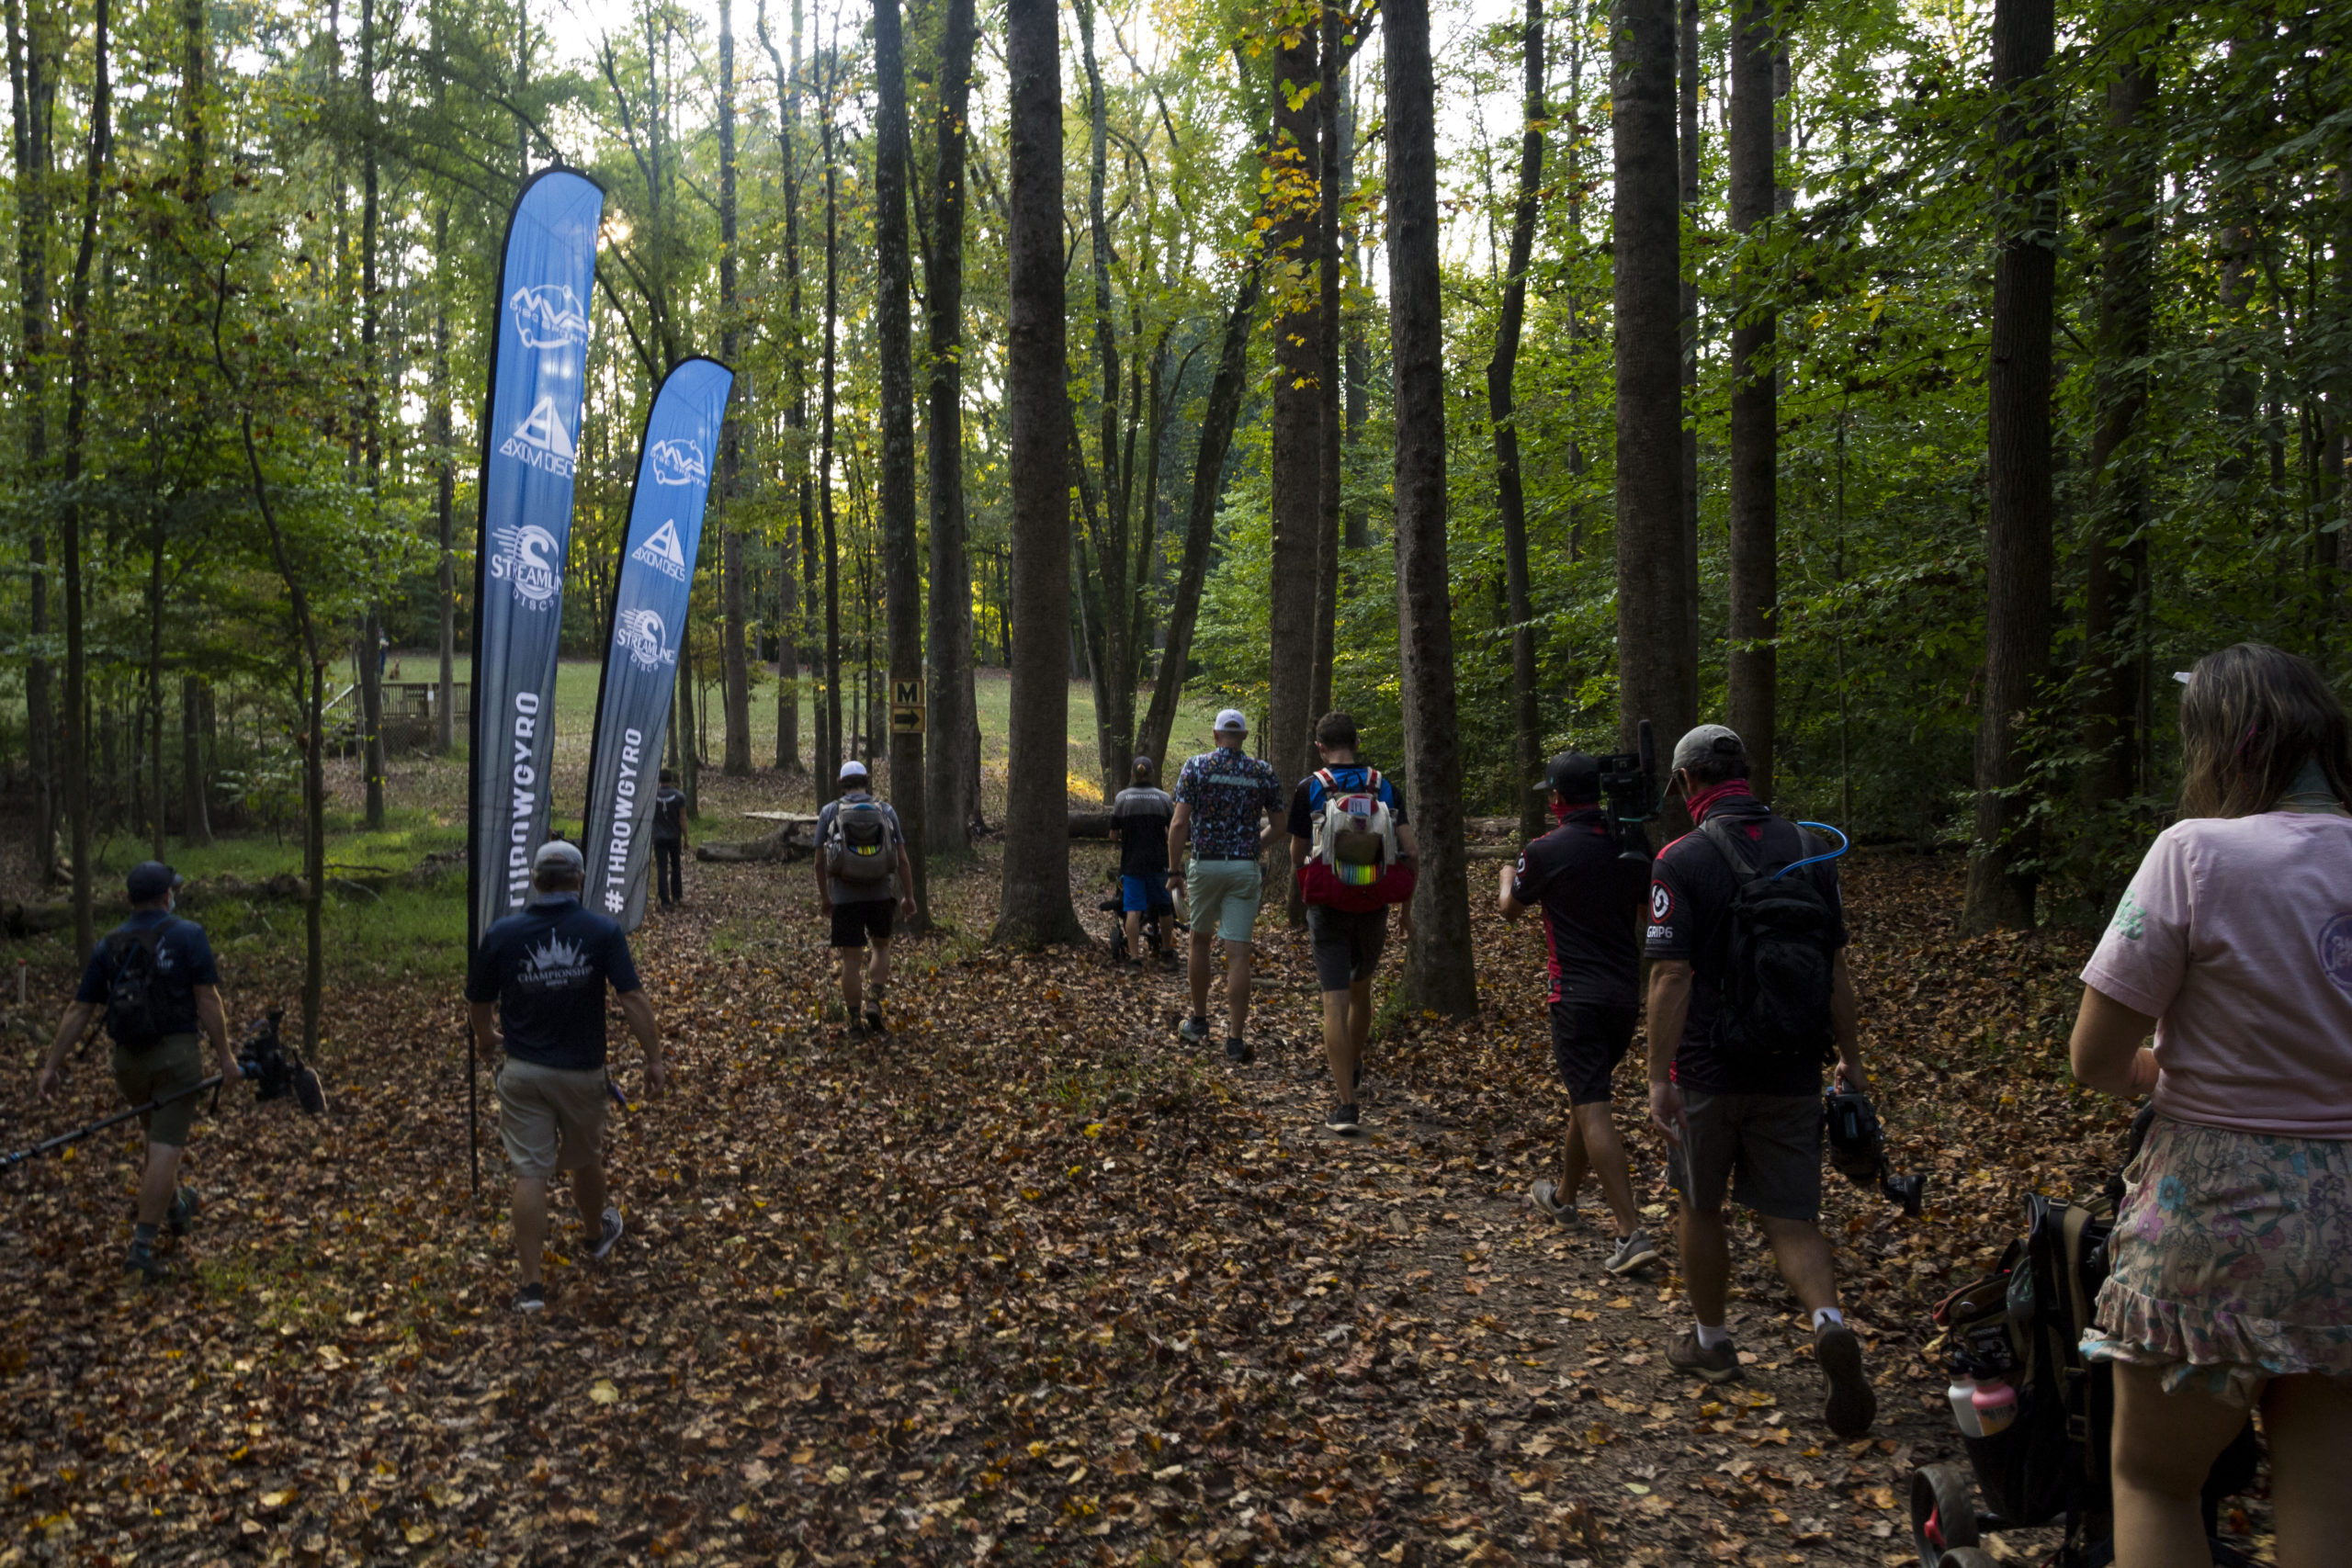 2020 Disc Golf Pro Tour Championship presented by GRIP6: Round One Recap